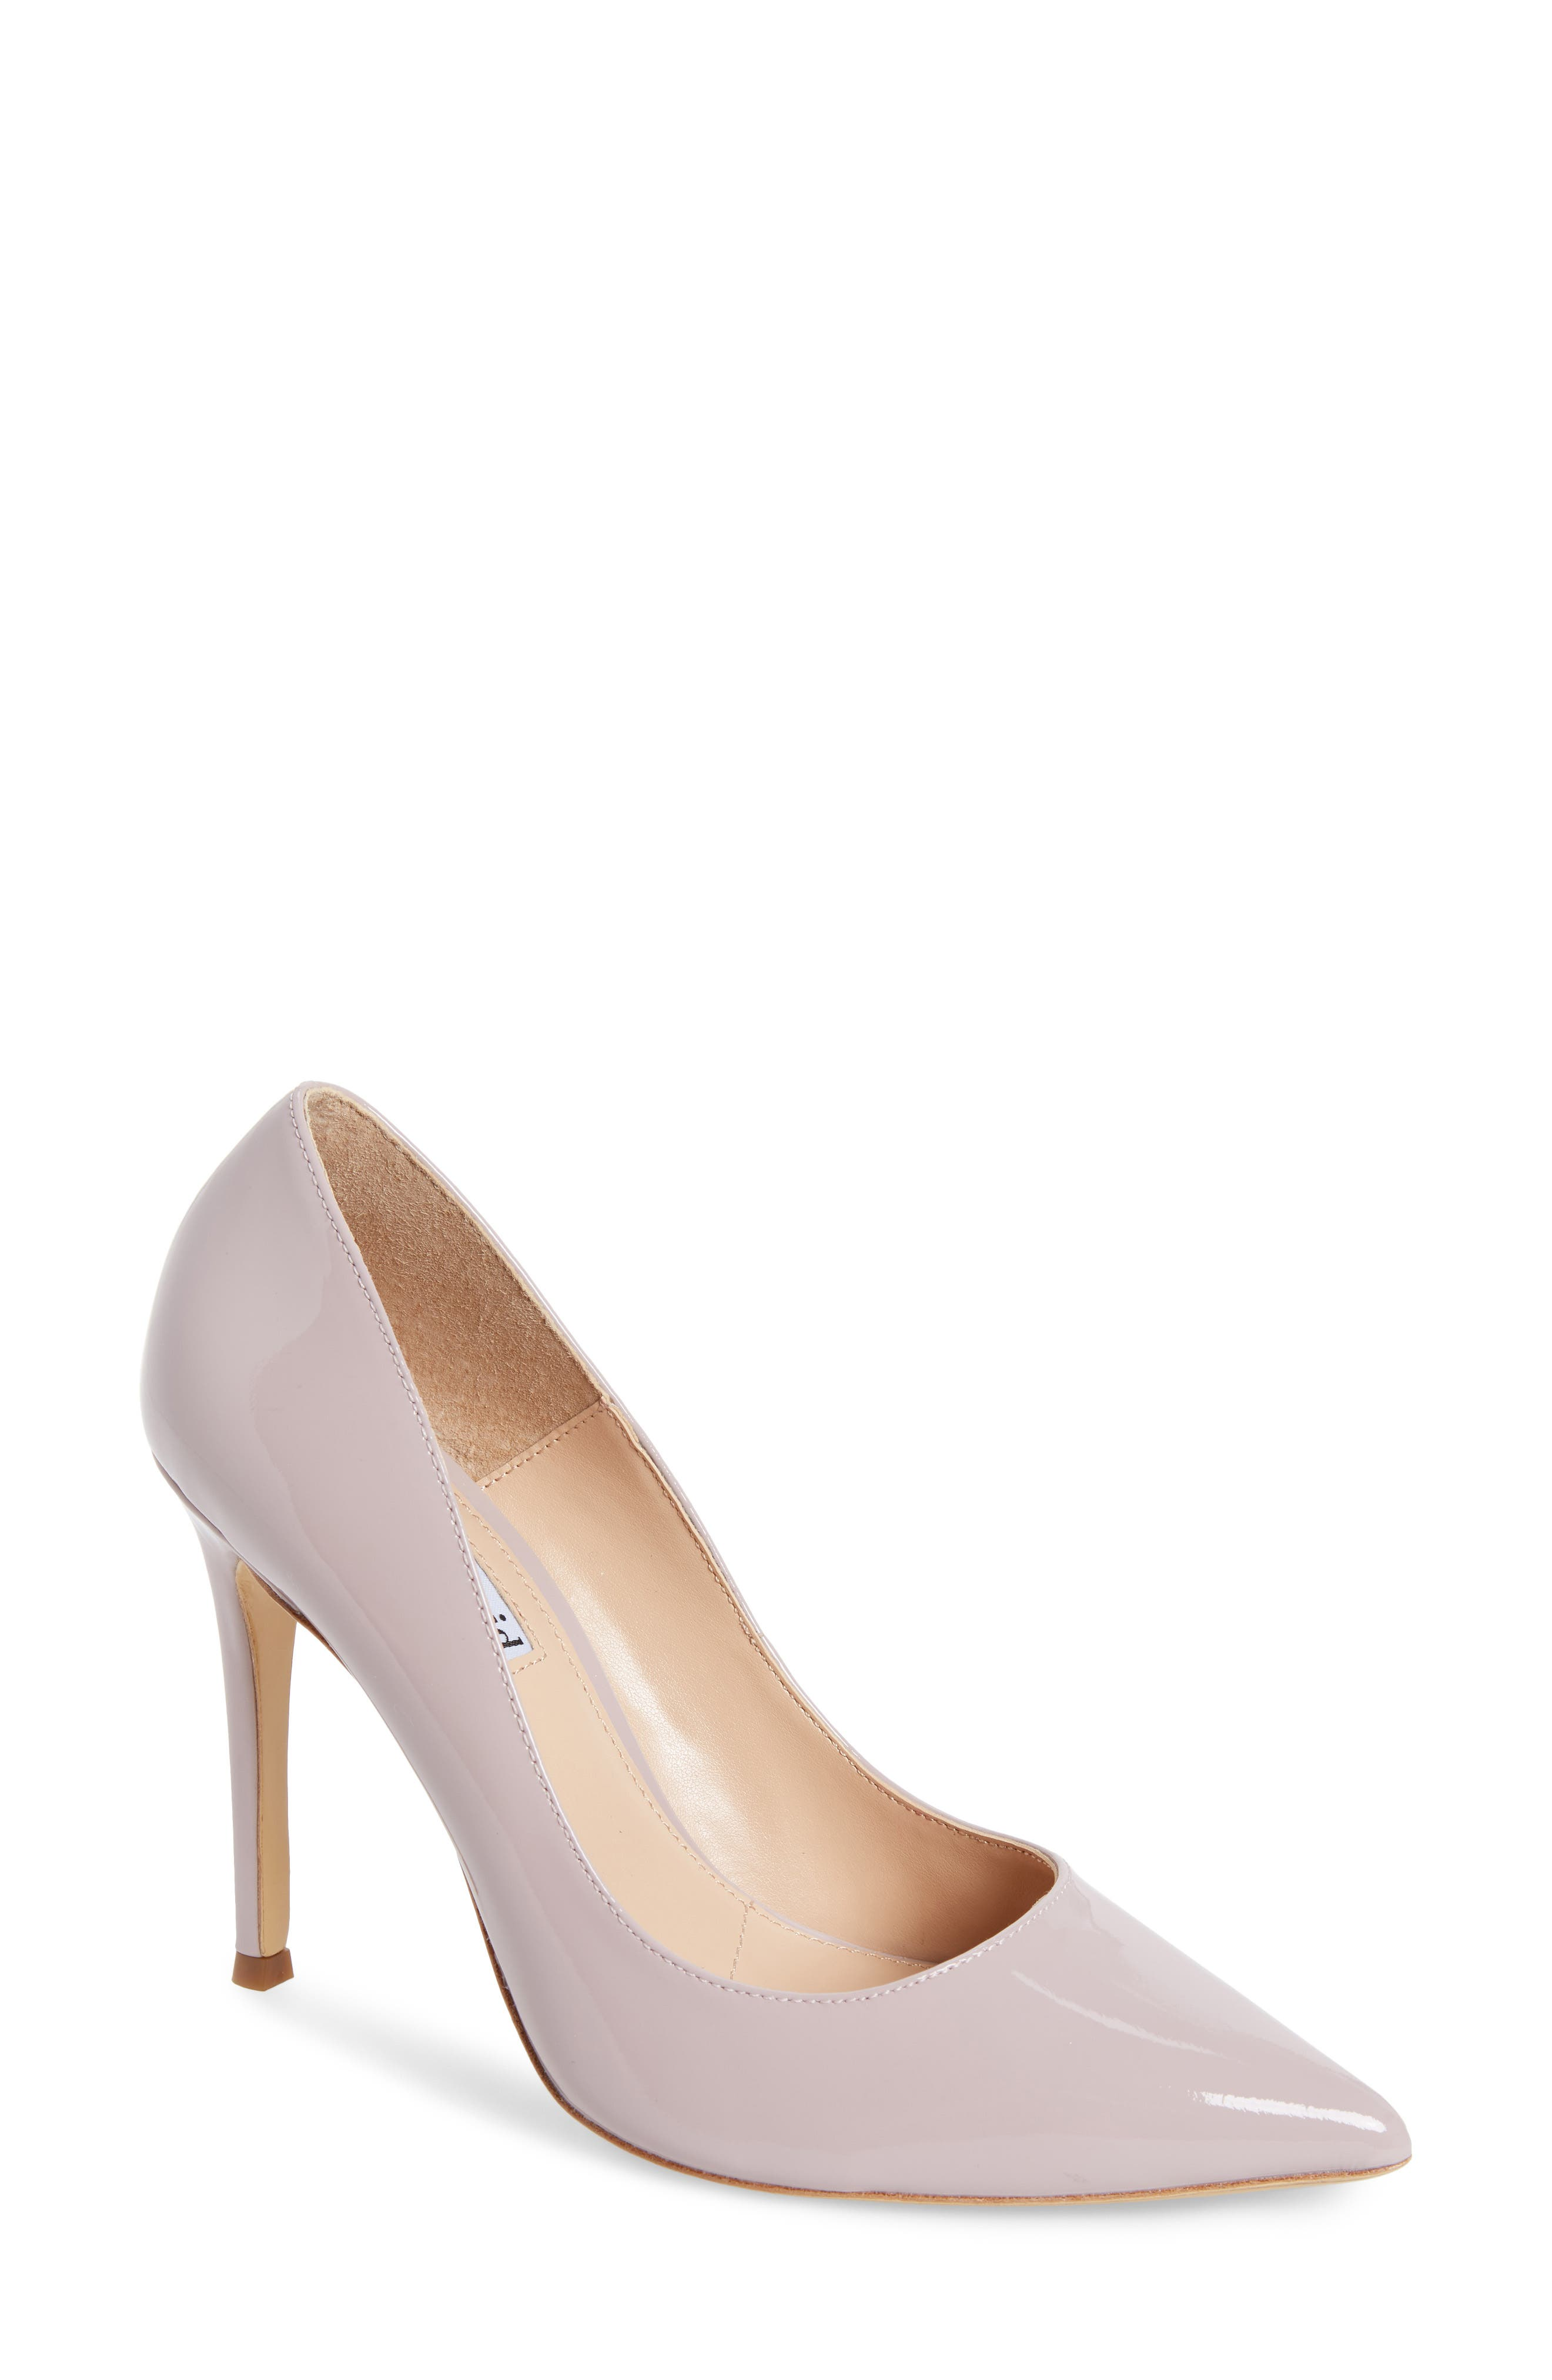 Calessi Pointy Toe Pump,                         Main,                         color, LAVENDER PATENT LEATHER